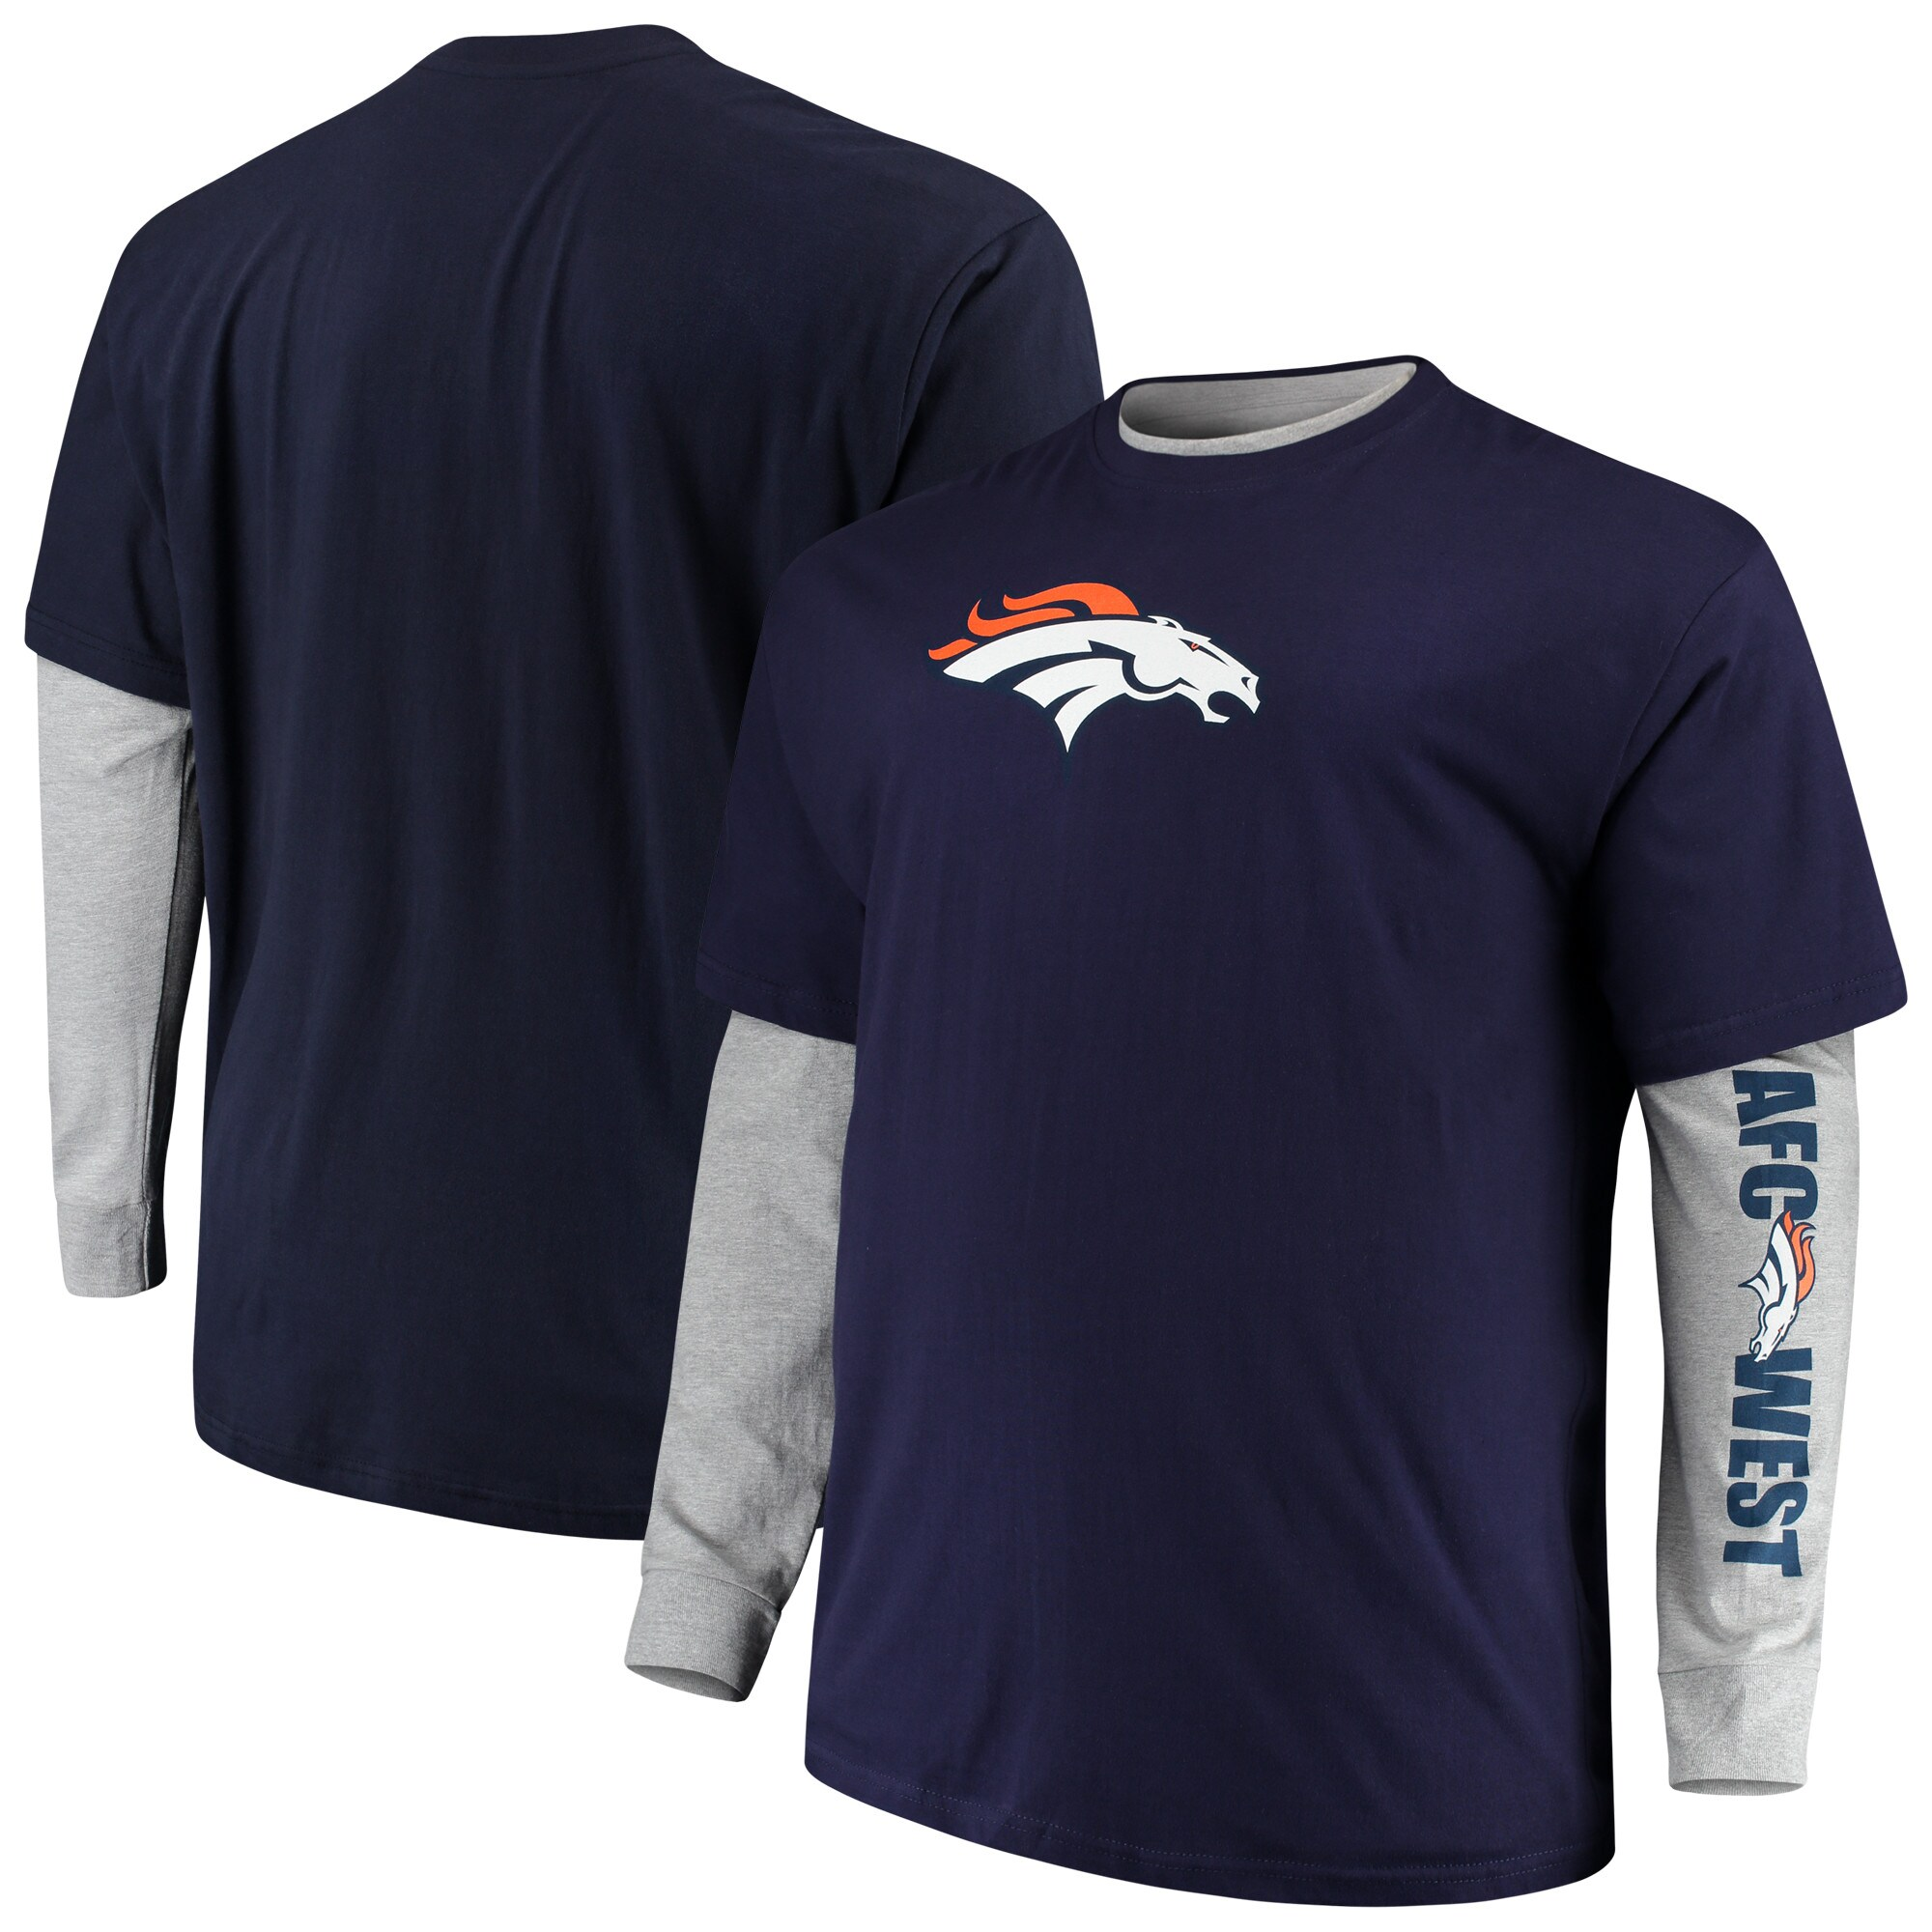 Denver Broncos Majestic Big & Tall T-Shirt Combo Set - Navy/Heathered Gray